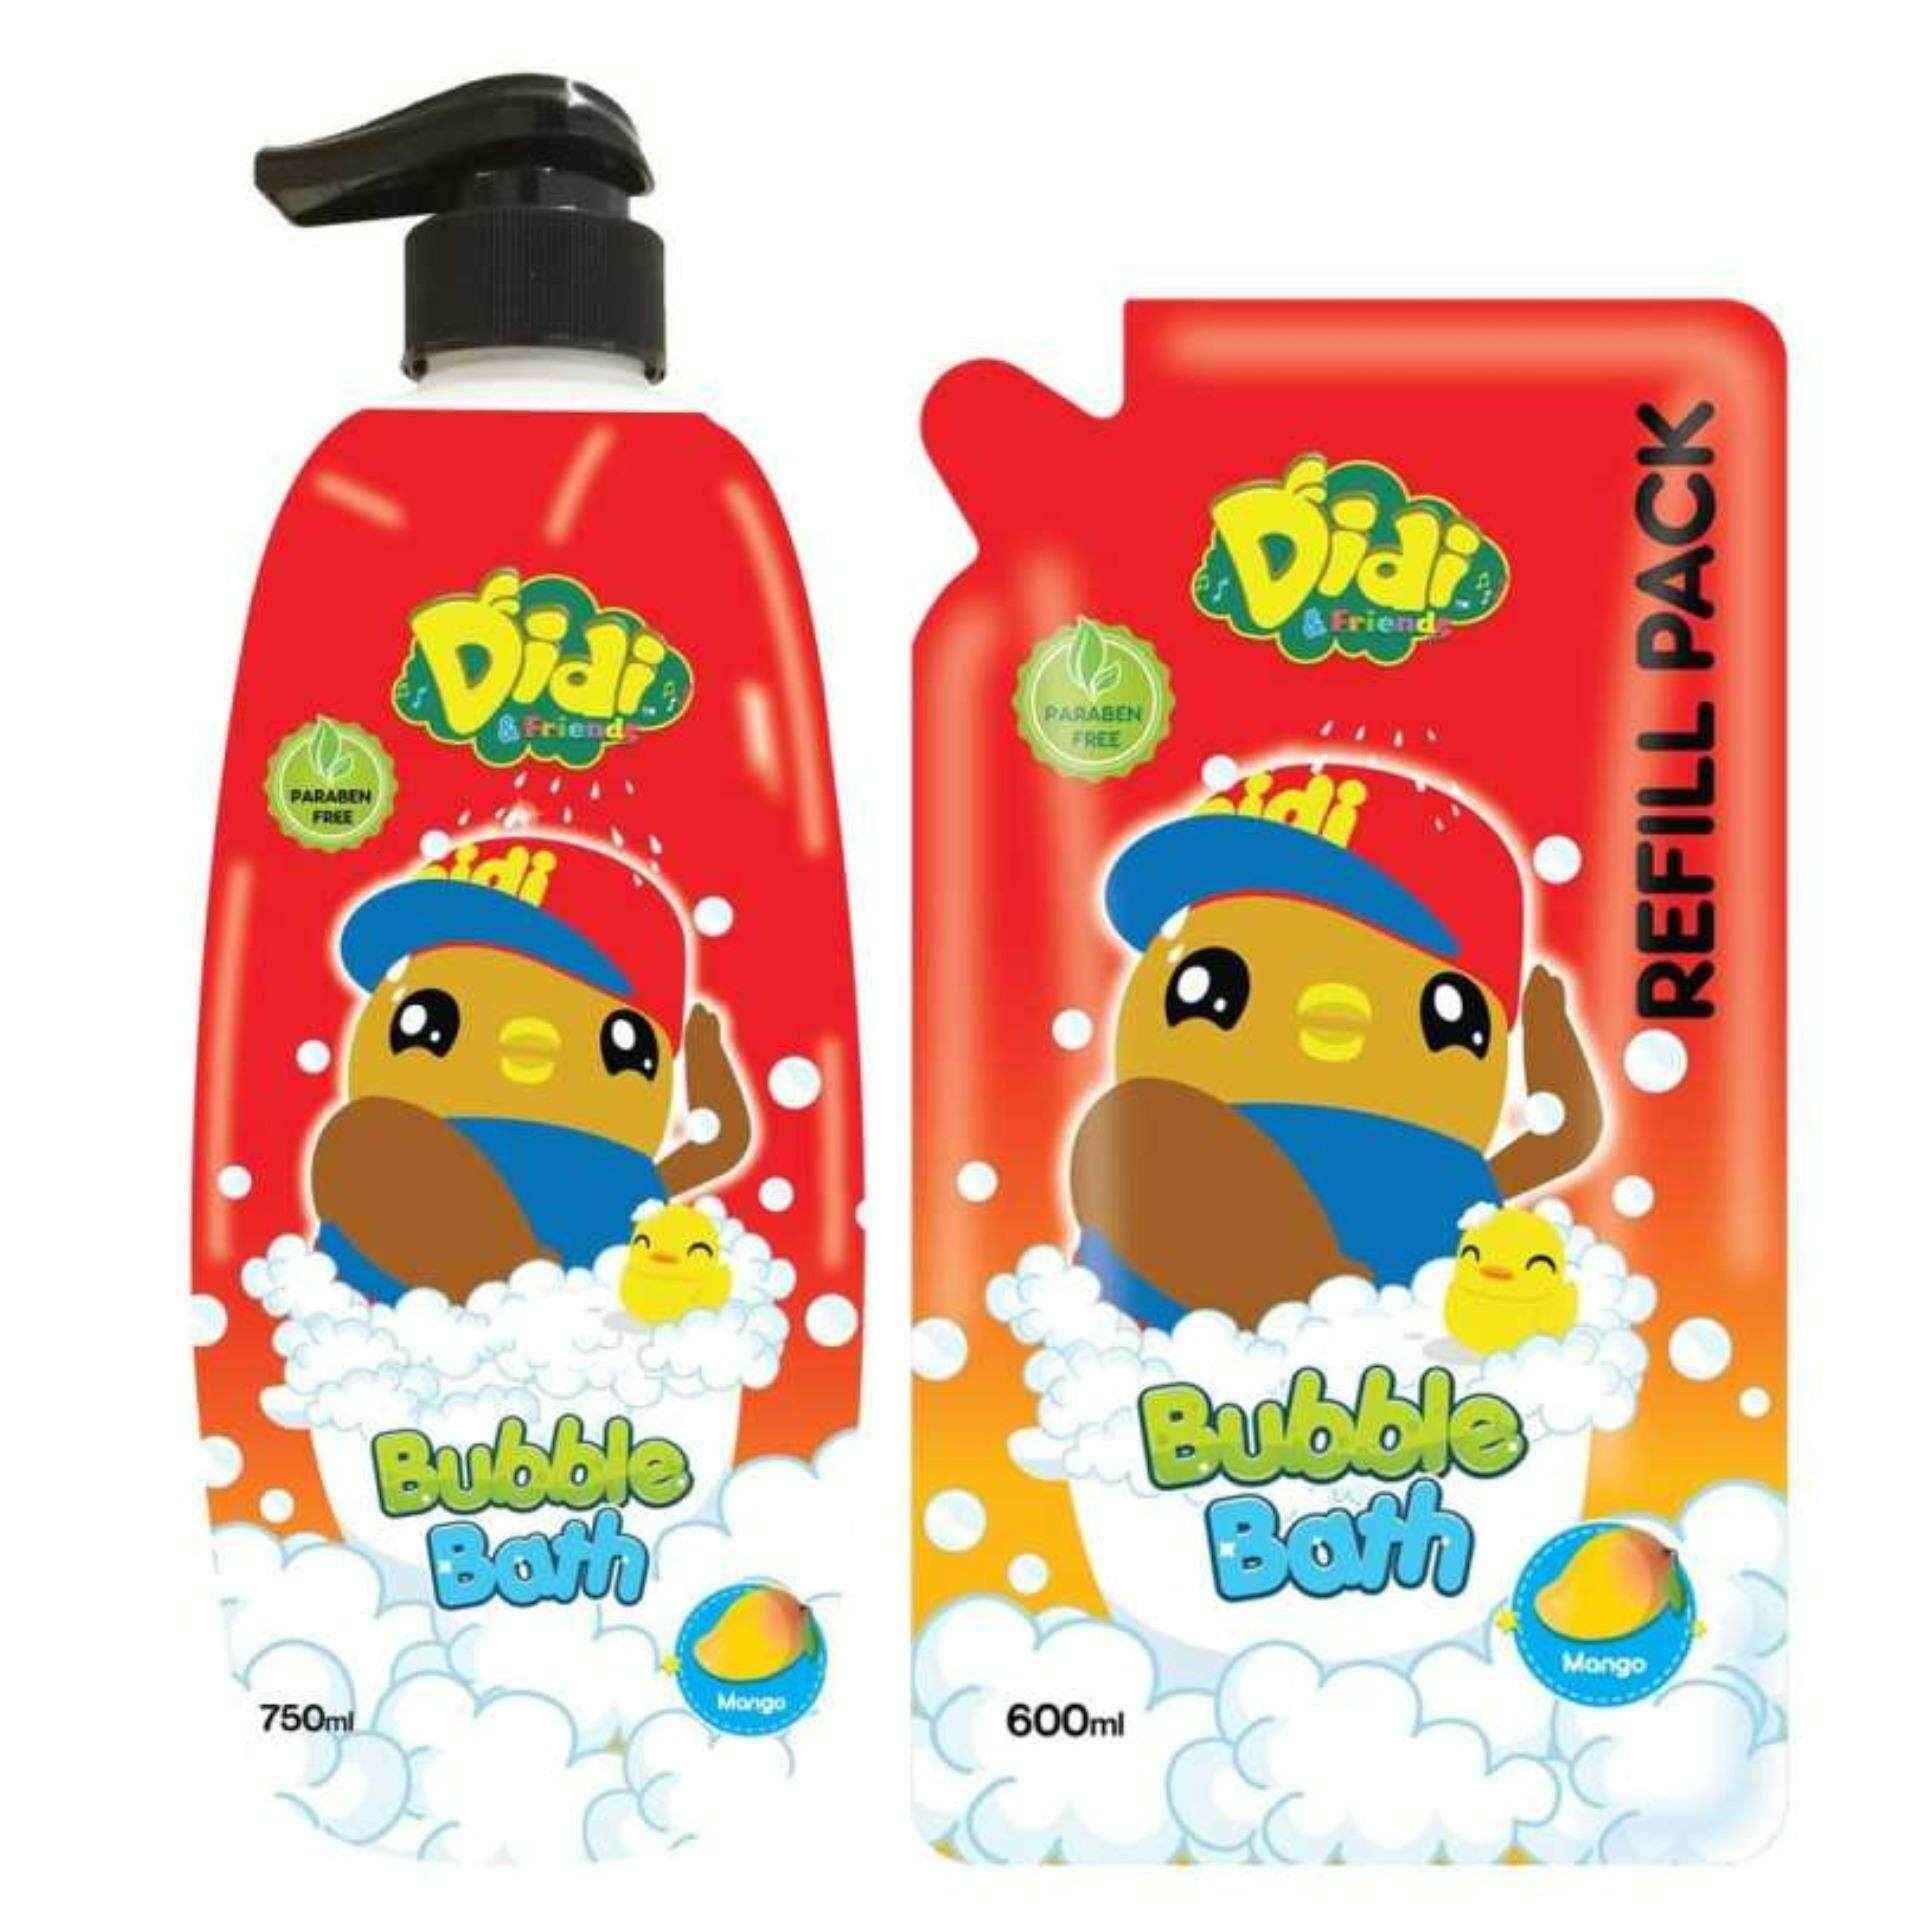 Didi & Friends Head To Toe Wash 750ML With Refill Pack 600ML Set - Mango Flavour